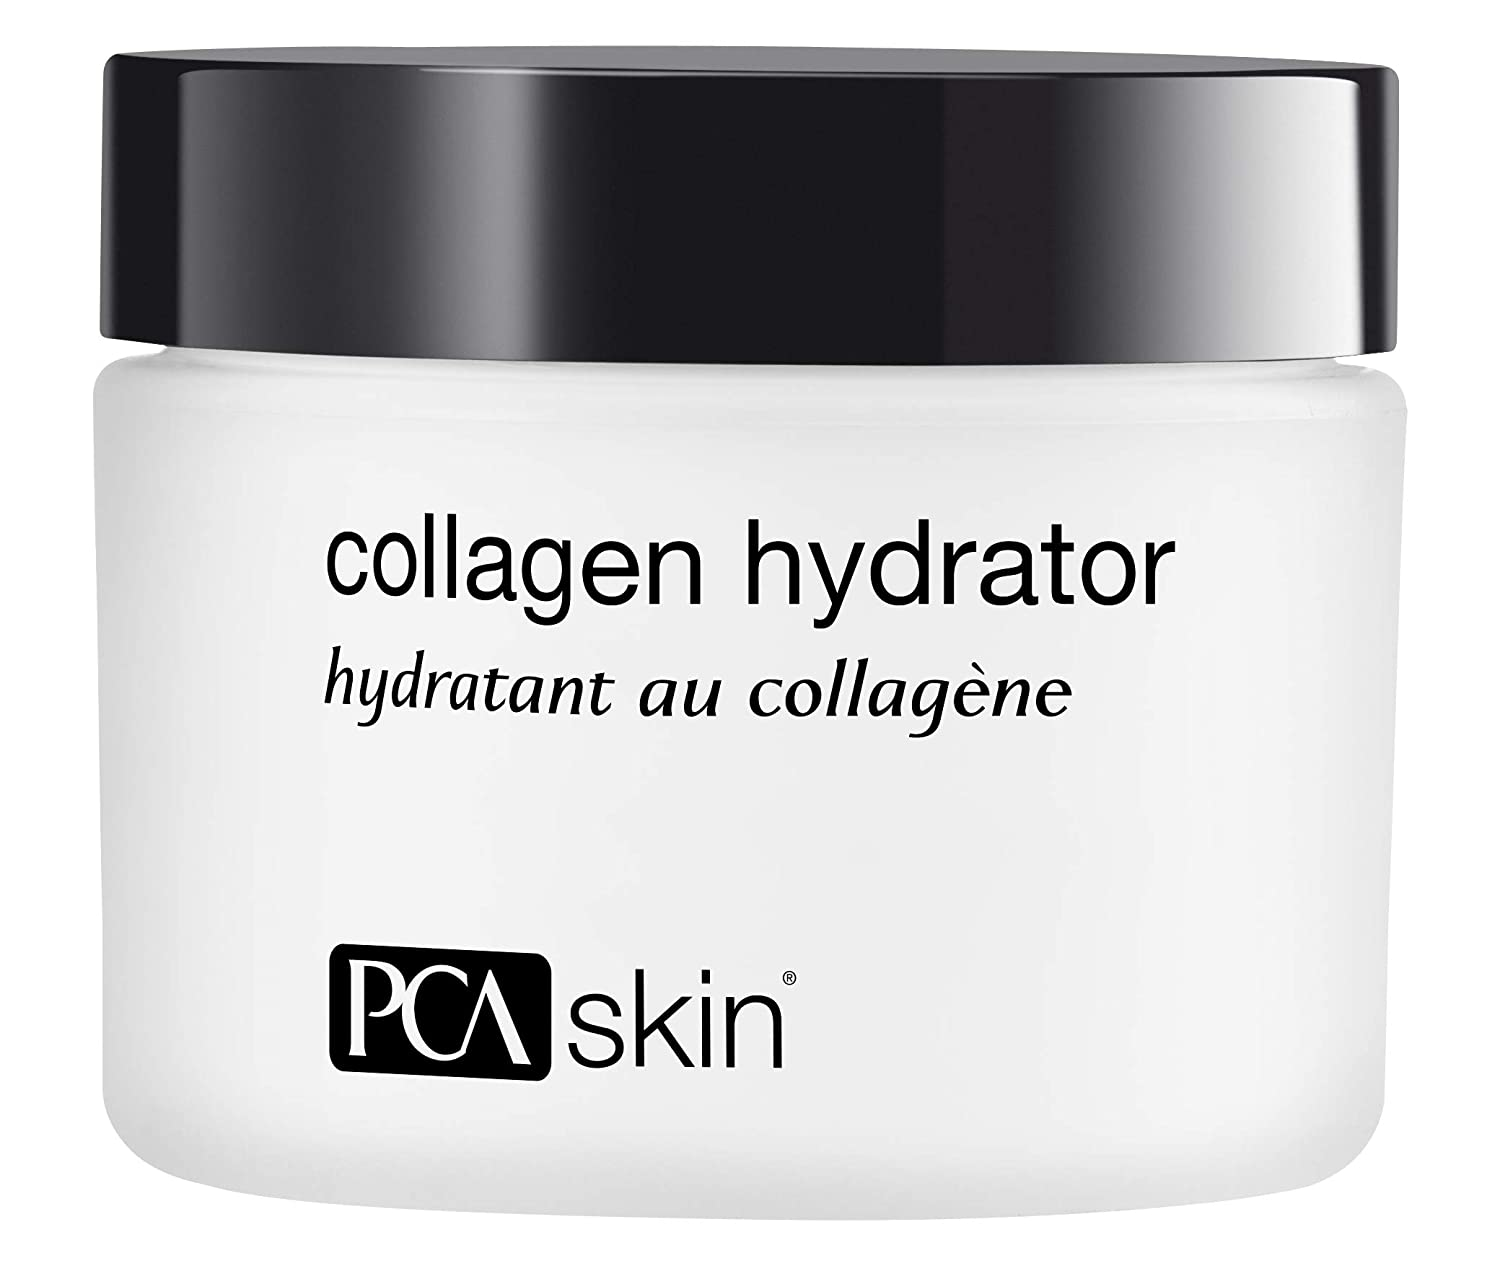 PCA SKIN Collagen Hydrator Antioxidant Facial Cream, 1.7 oz